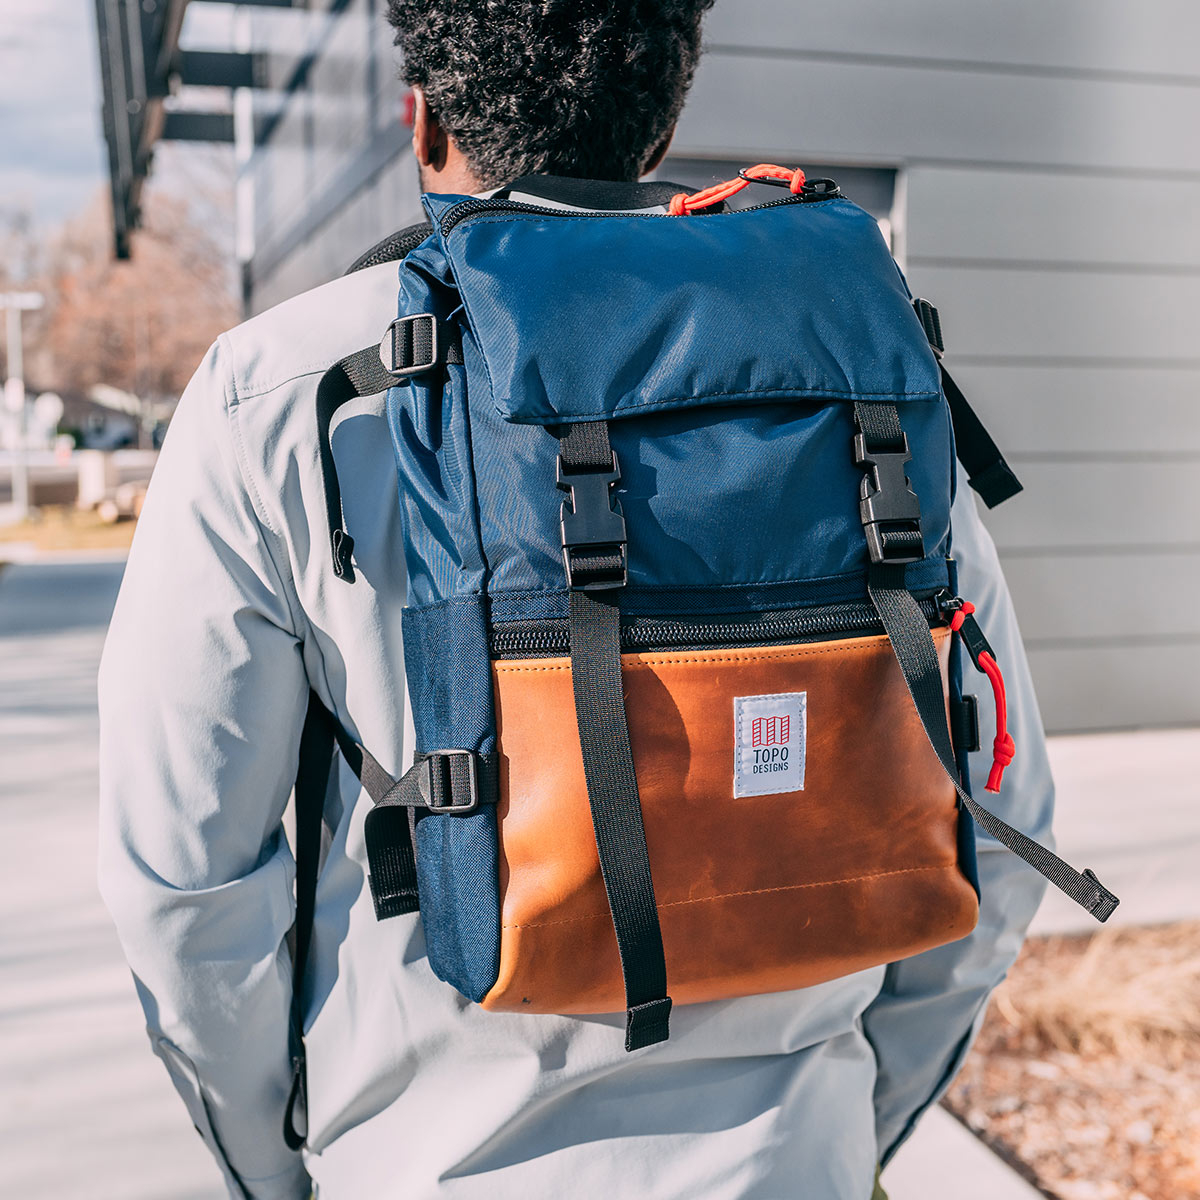 Topo Designs Rover Pack Heritage Navy/Brown Leather, timeless backpack with great functionalities